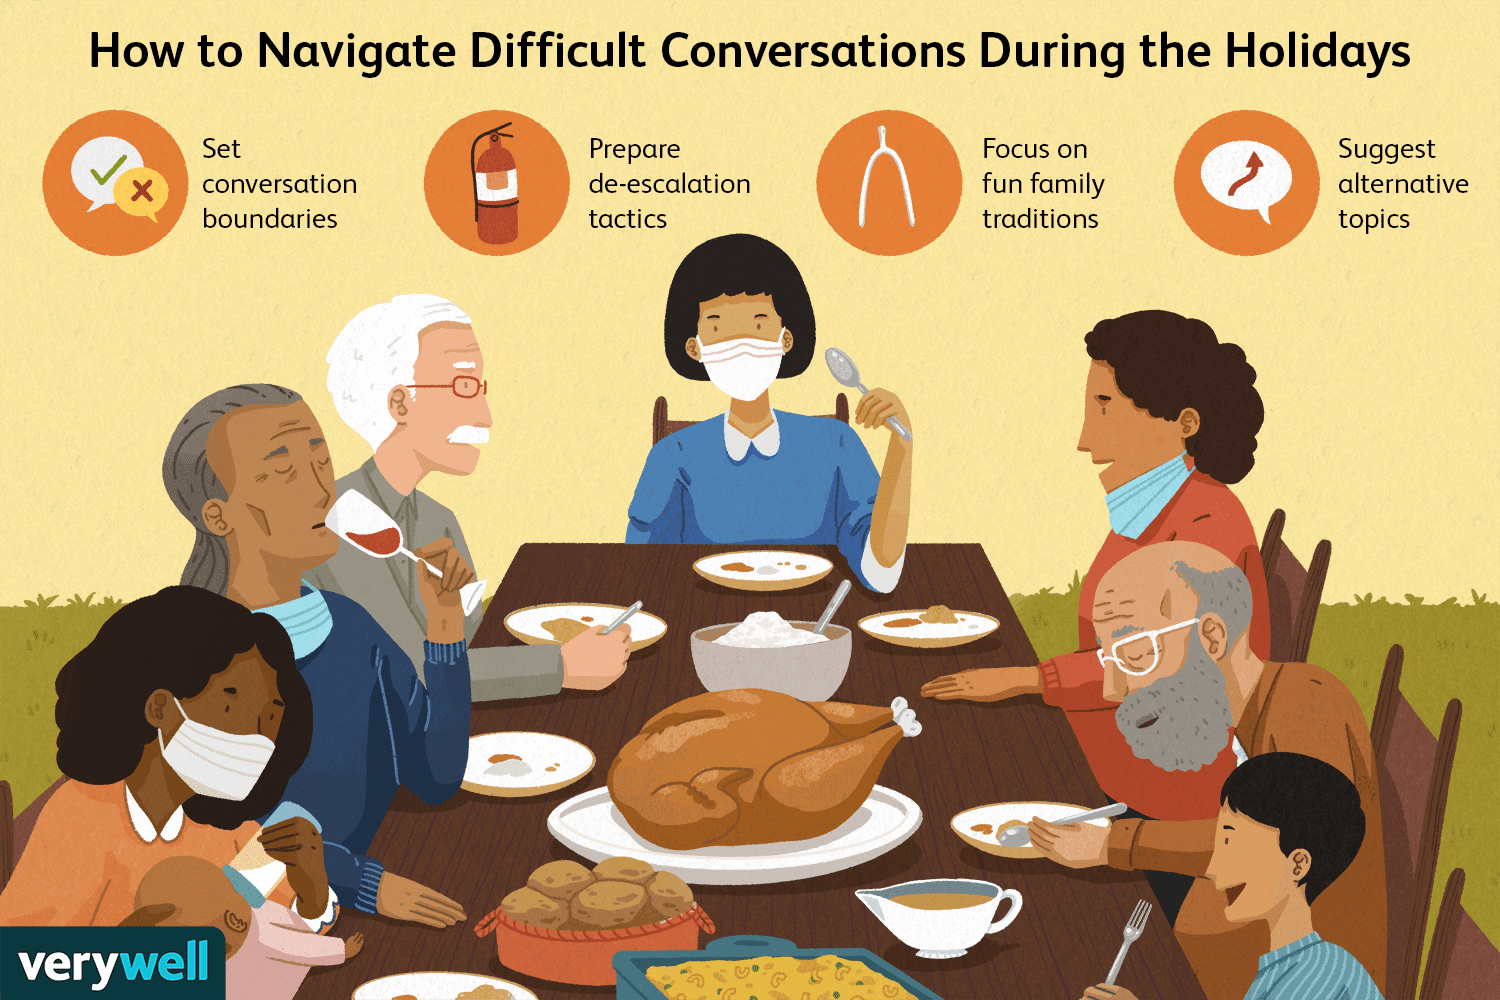 How to Navigate Difficult Conversations This Holiday Season